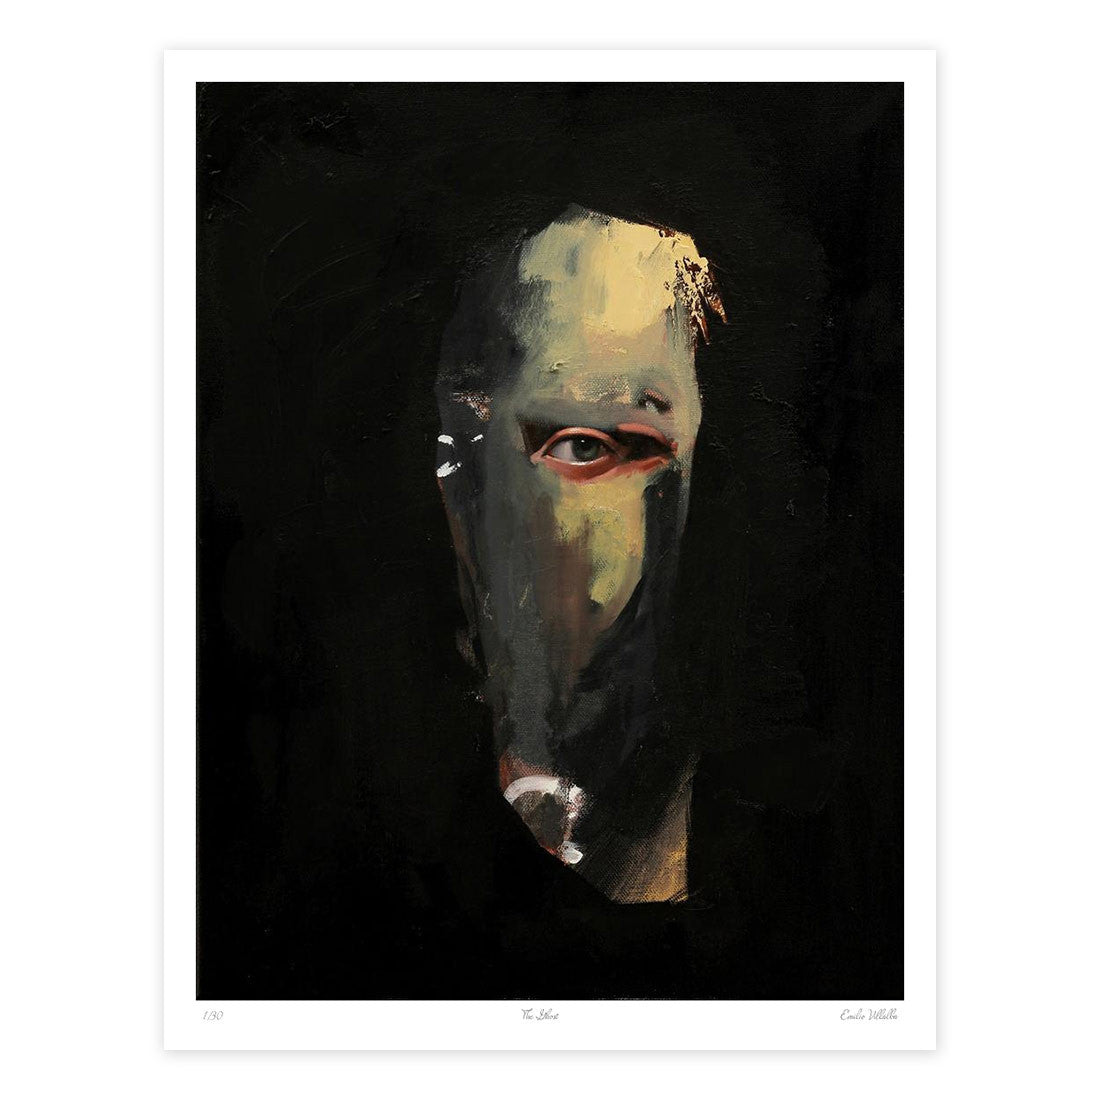 The Ghost Fine Art Print